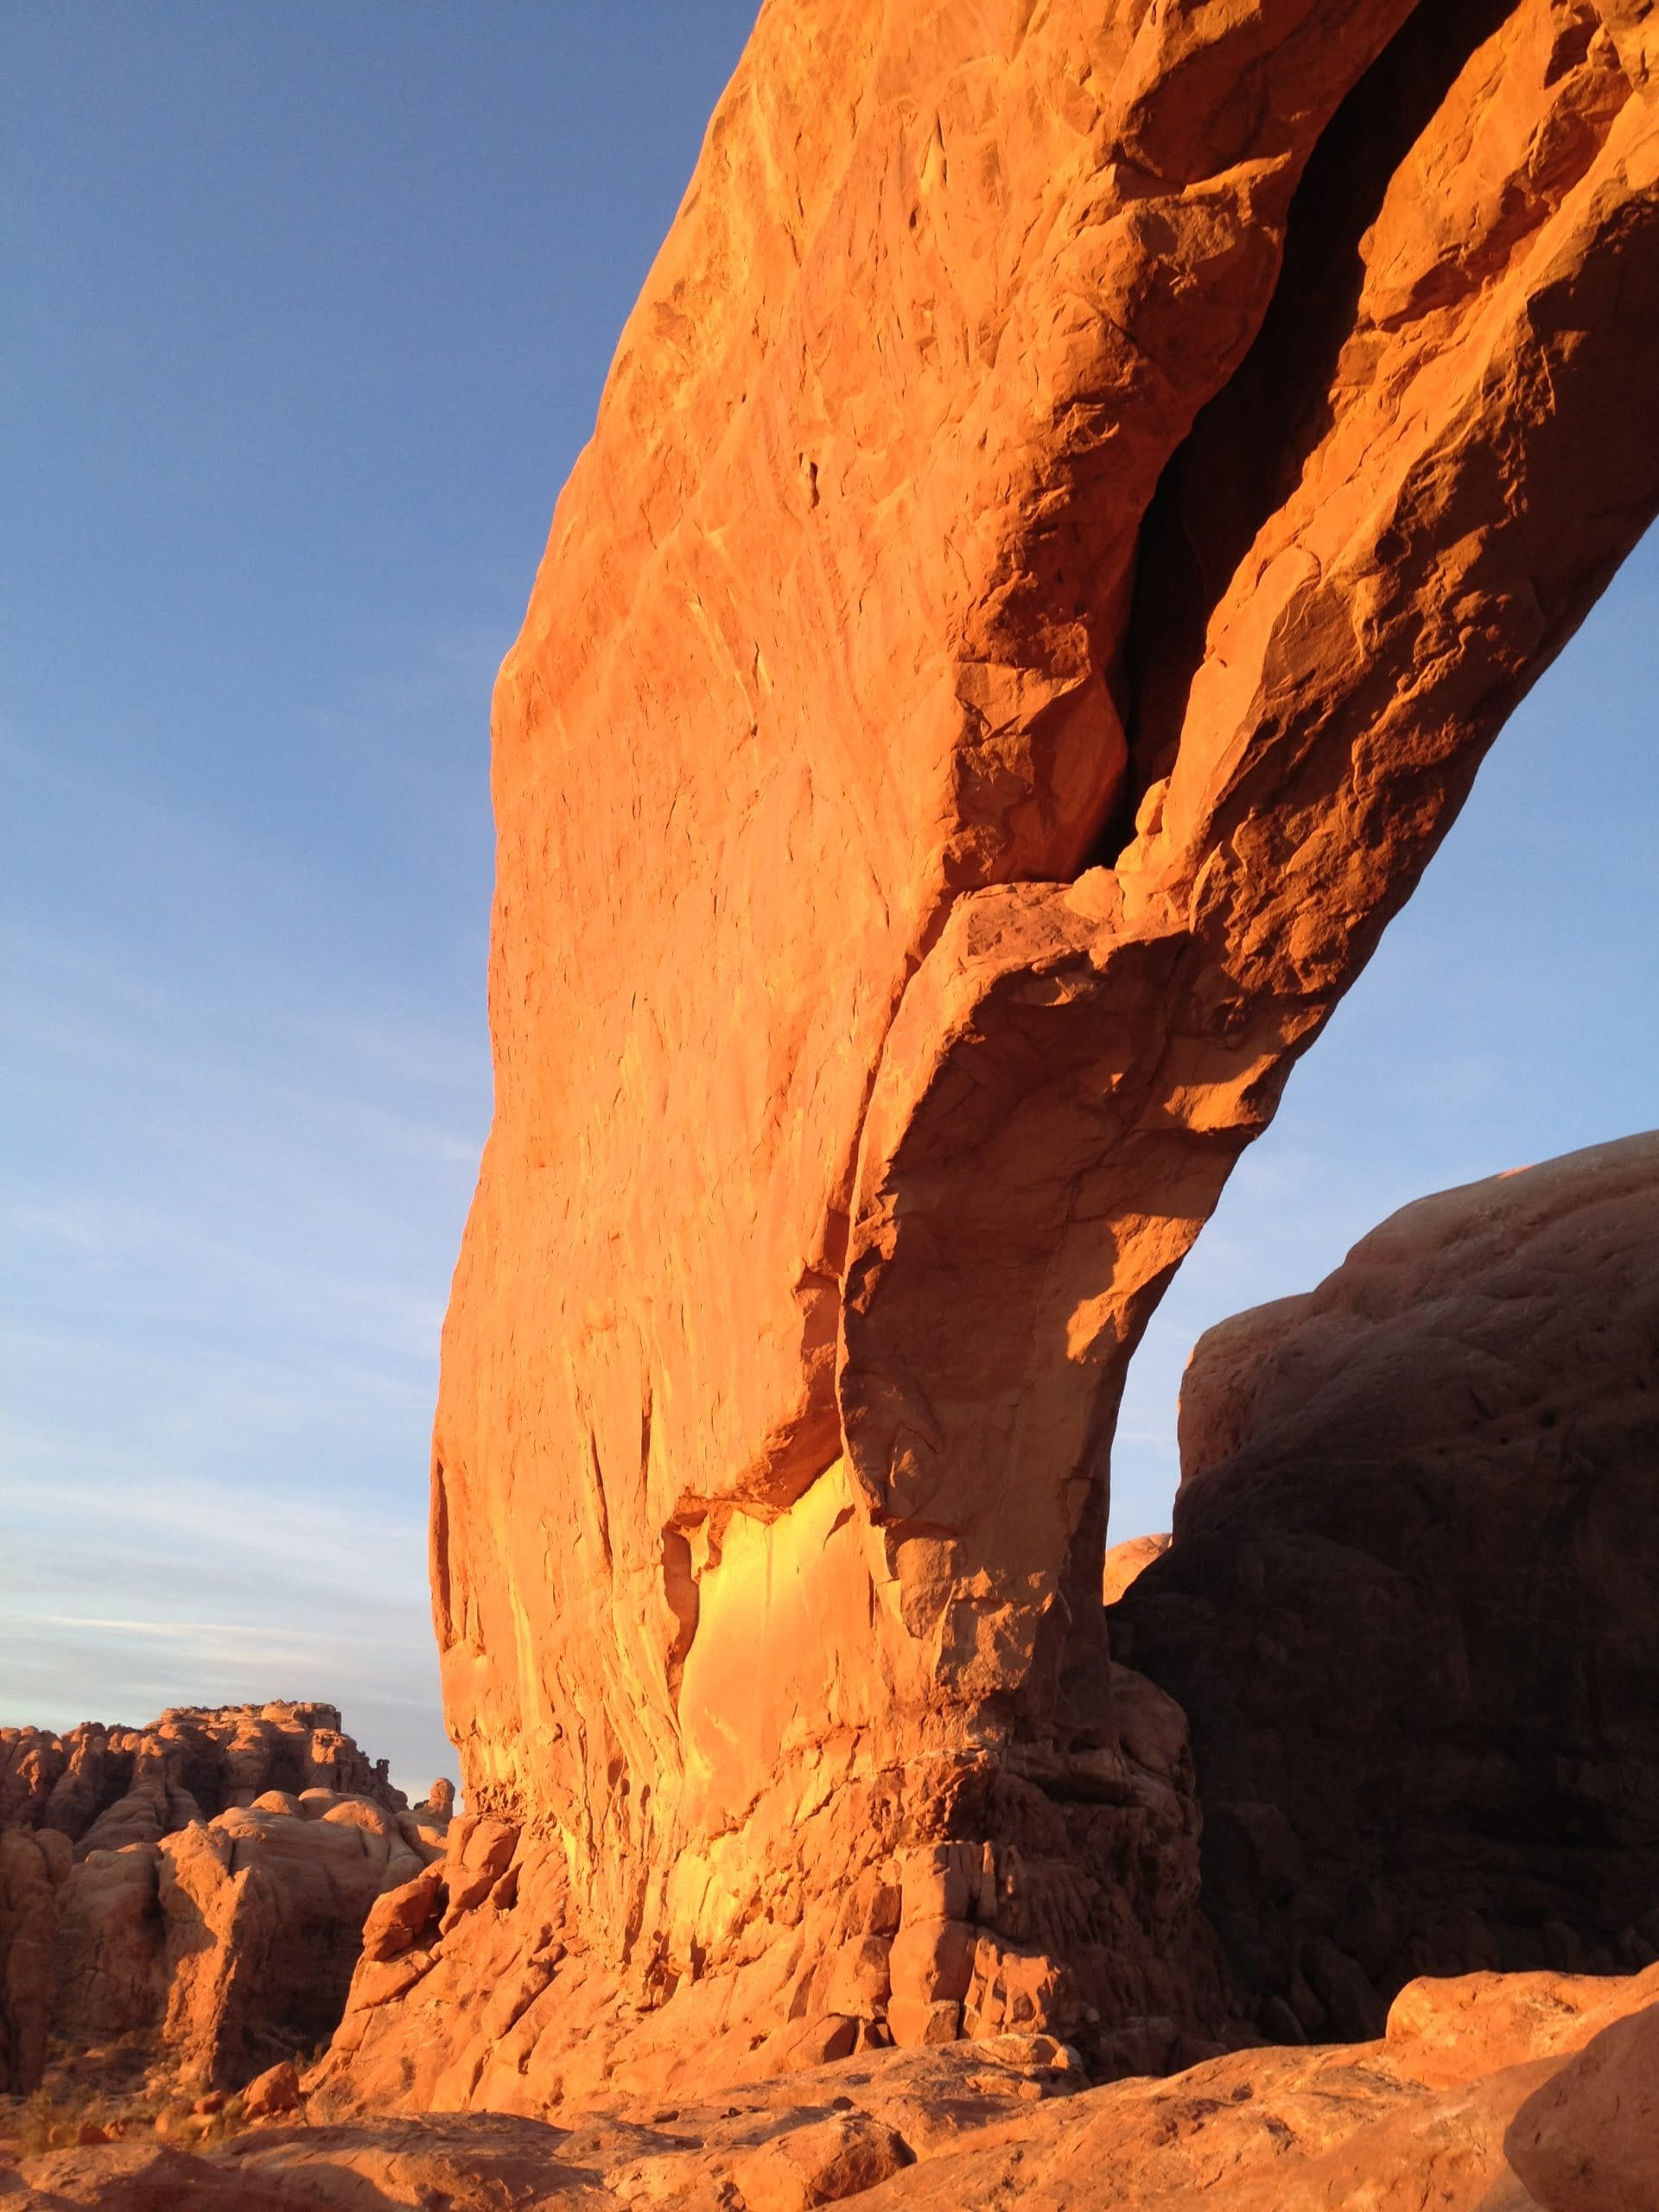 Arch in Arches National Park, UT